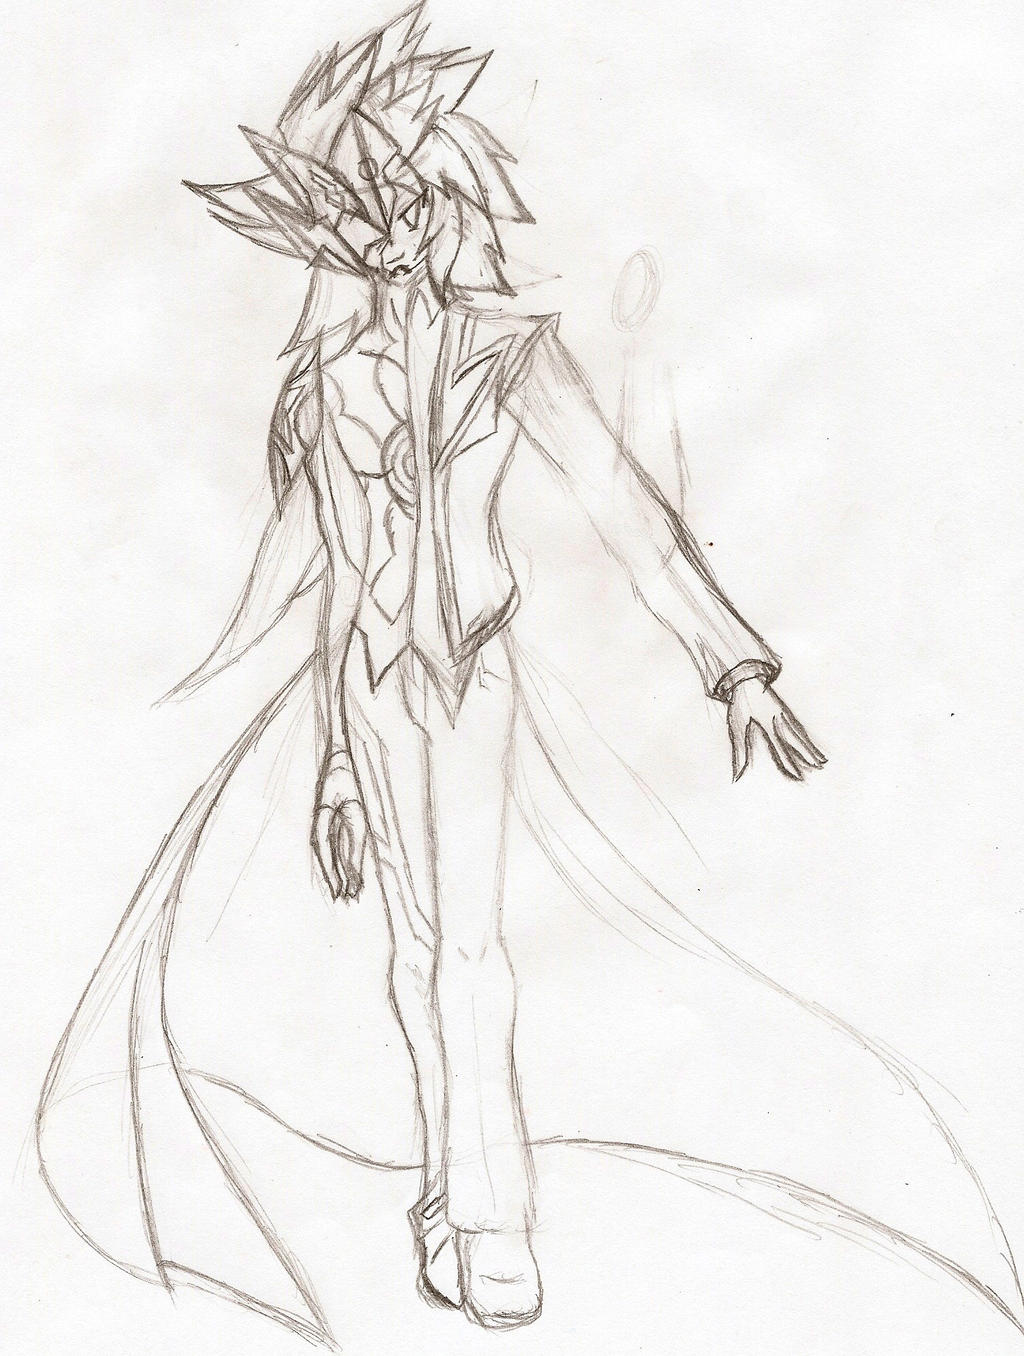 Vrains OC: Two Lives Walked On by NeonNeoz